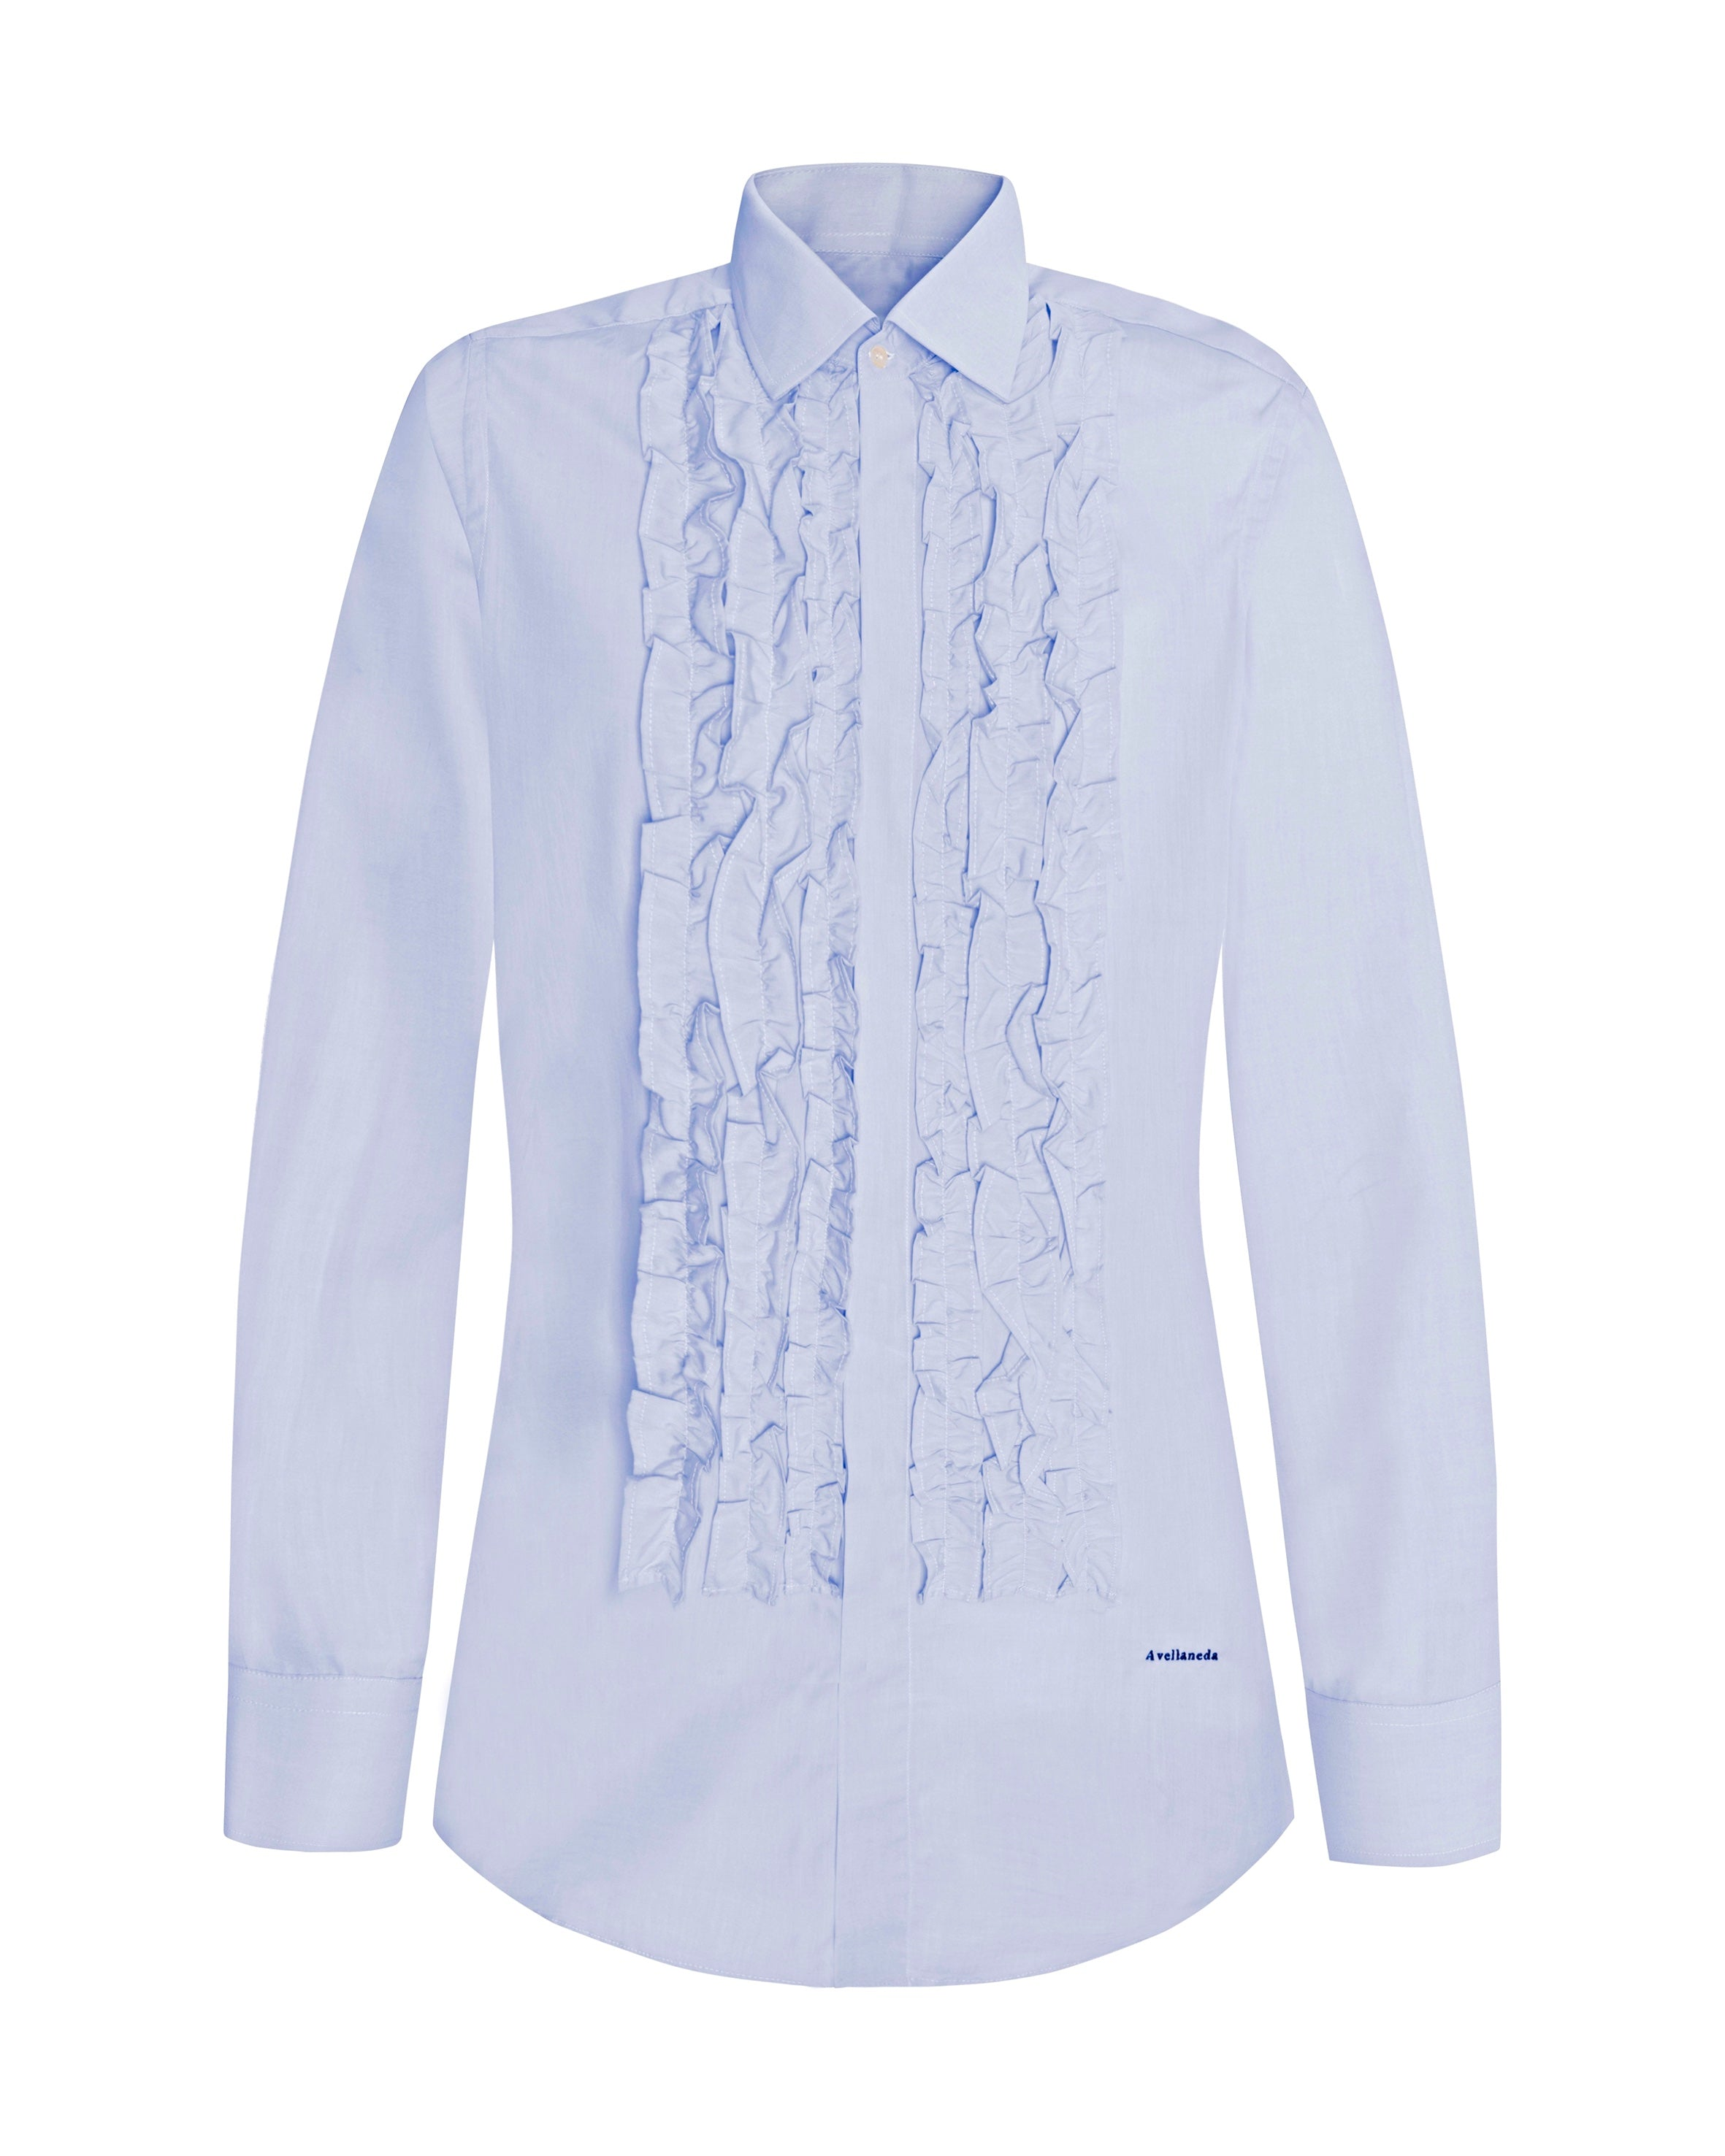 MEN'S MULTI-RUFFLED BLUE SHIRT